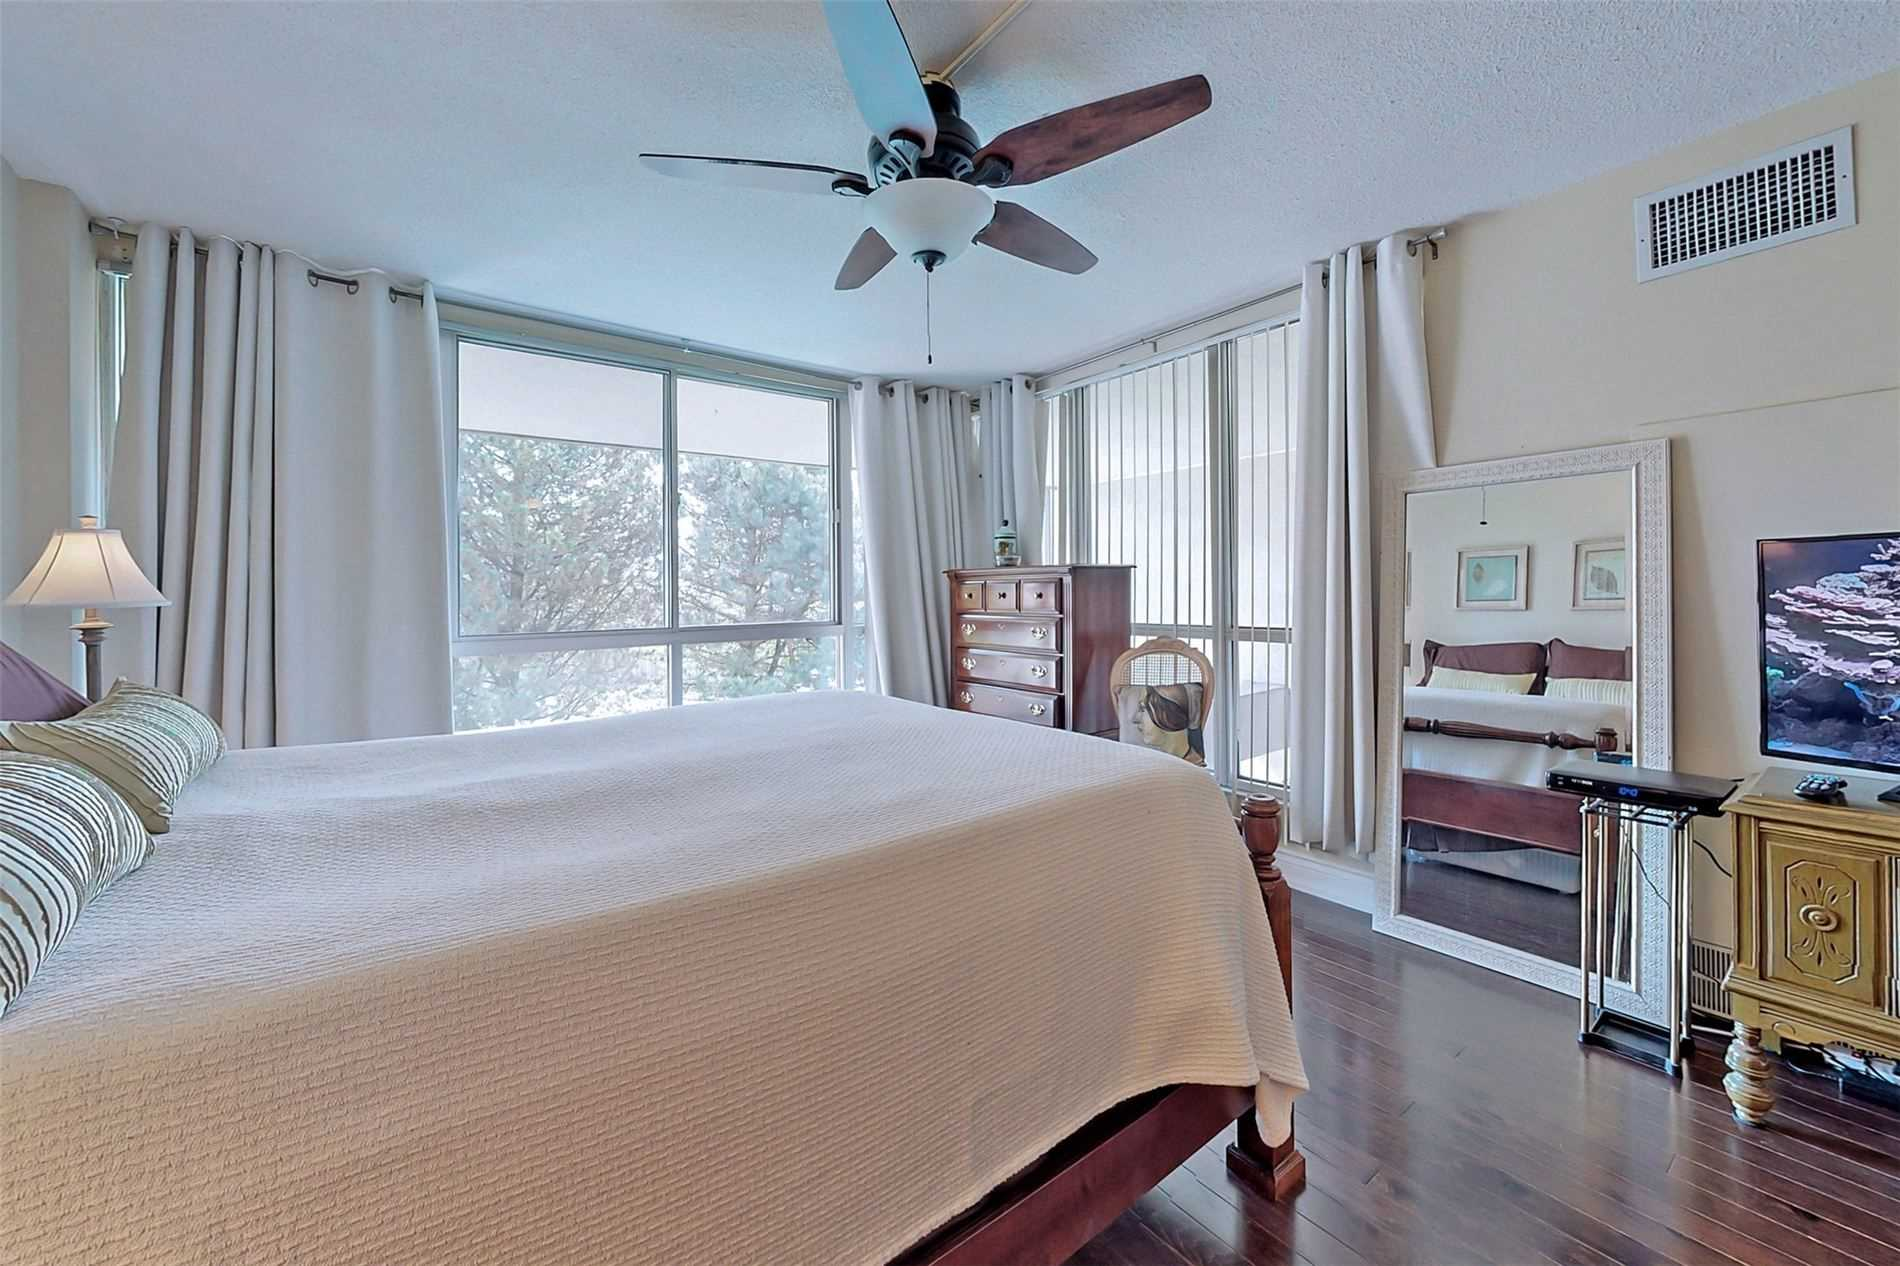 Image 11 of 40 showing inside of 2 Bedroom Condo Apt 2-Storey for Sale at 25 Cumberland Lane Unit# 105, Ajax L1S7K1